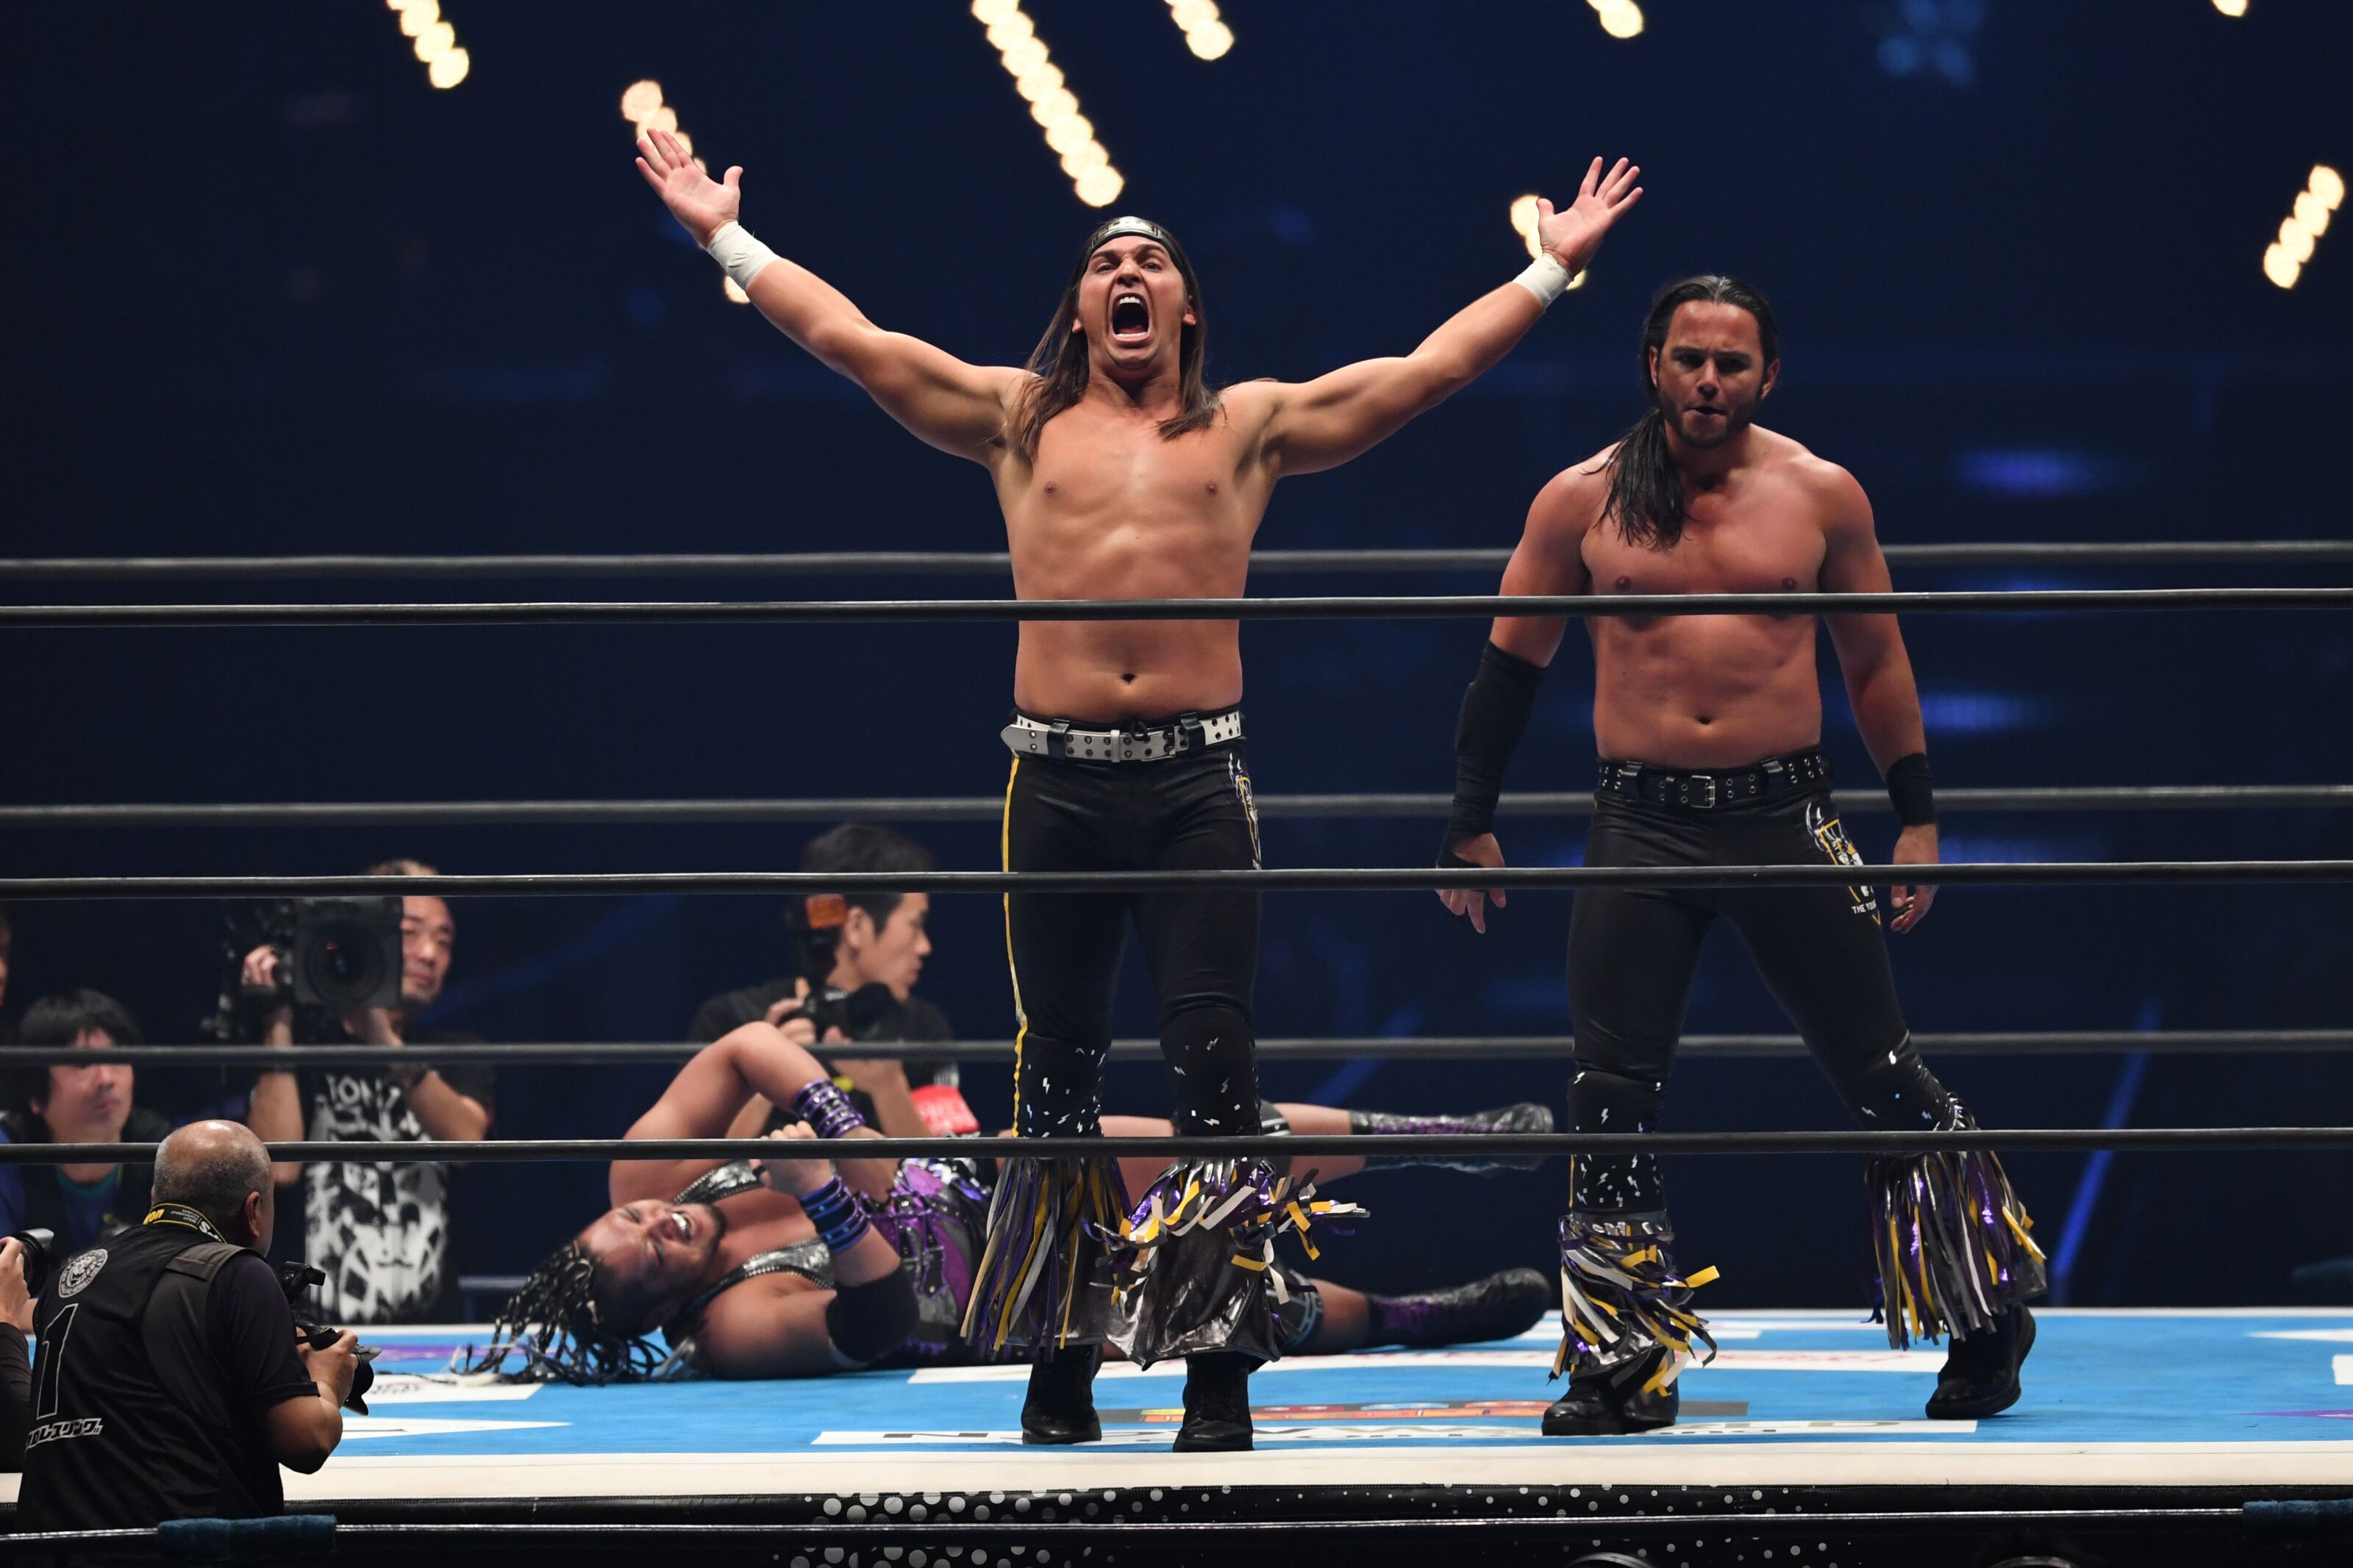 AEW: The Young Bucks will be in a killer Street Fight next week